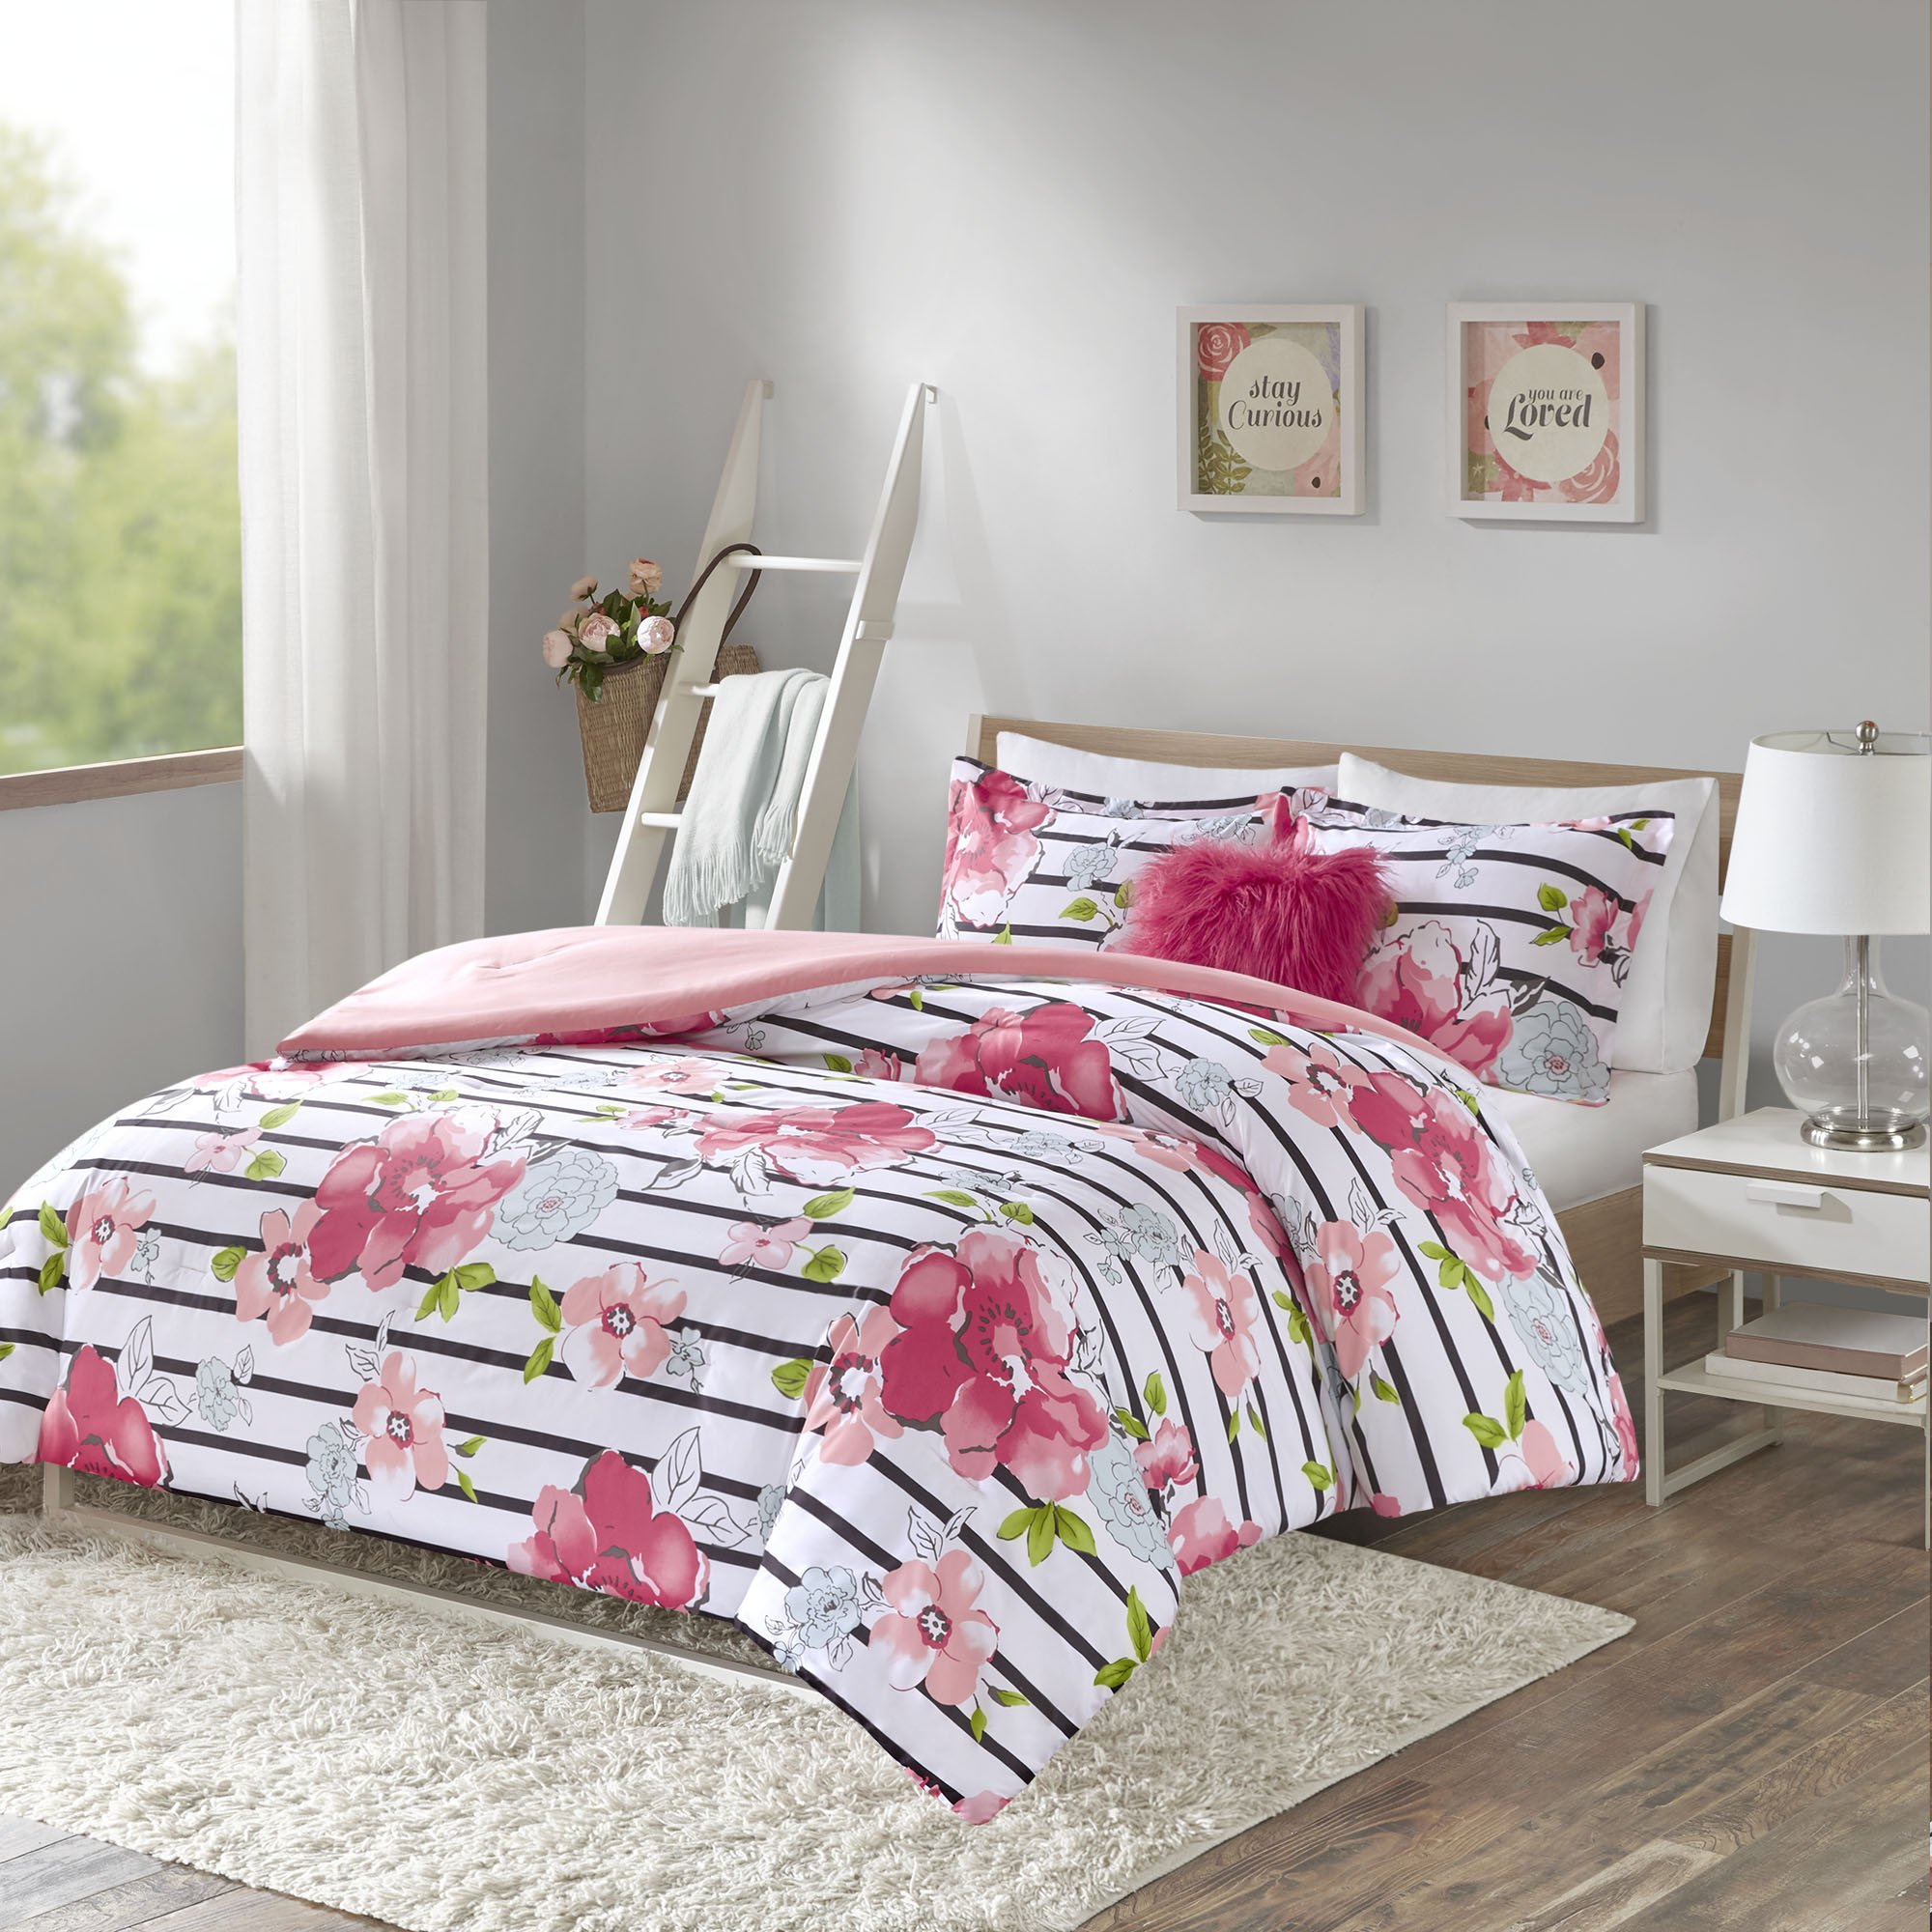 Comfort Spaces - Zoe Comforter Set - 3 Piece - Pink - Printed Multi Vibrant Youthful Color Floral Design with Faux Fur Decorative Pillow - Twin Size, includes 1 Comforter, 1 Shams, 1 Decorative Pillow